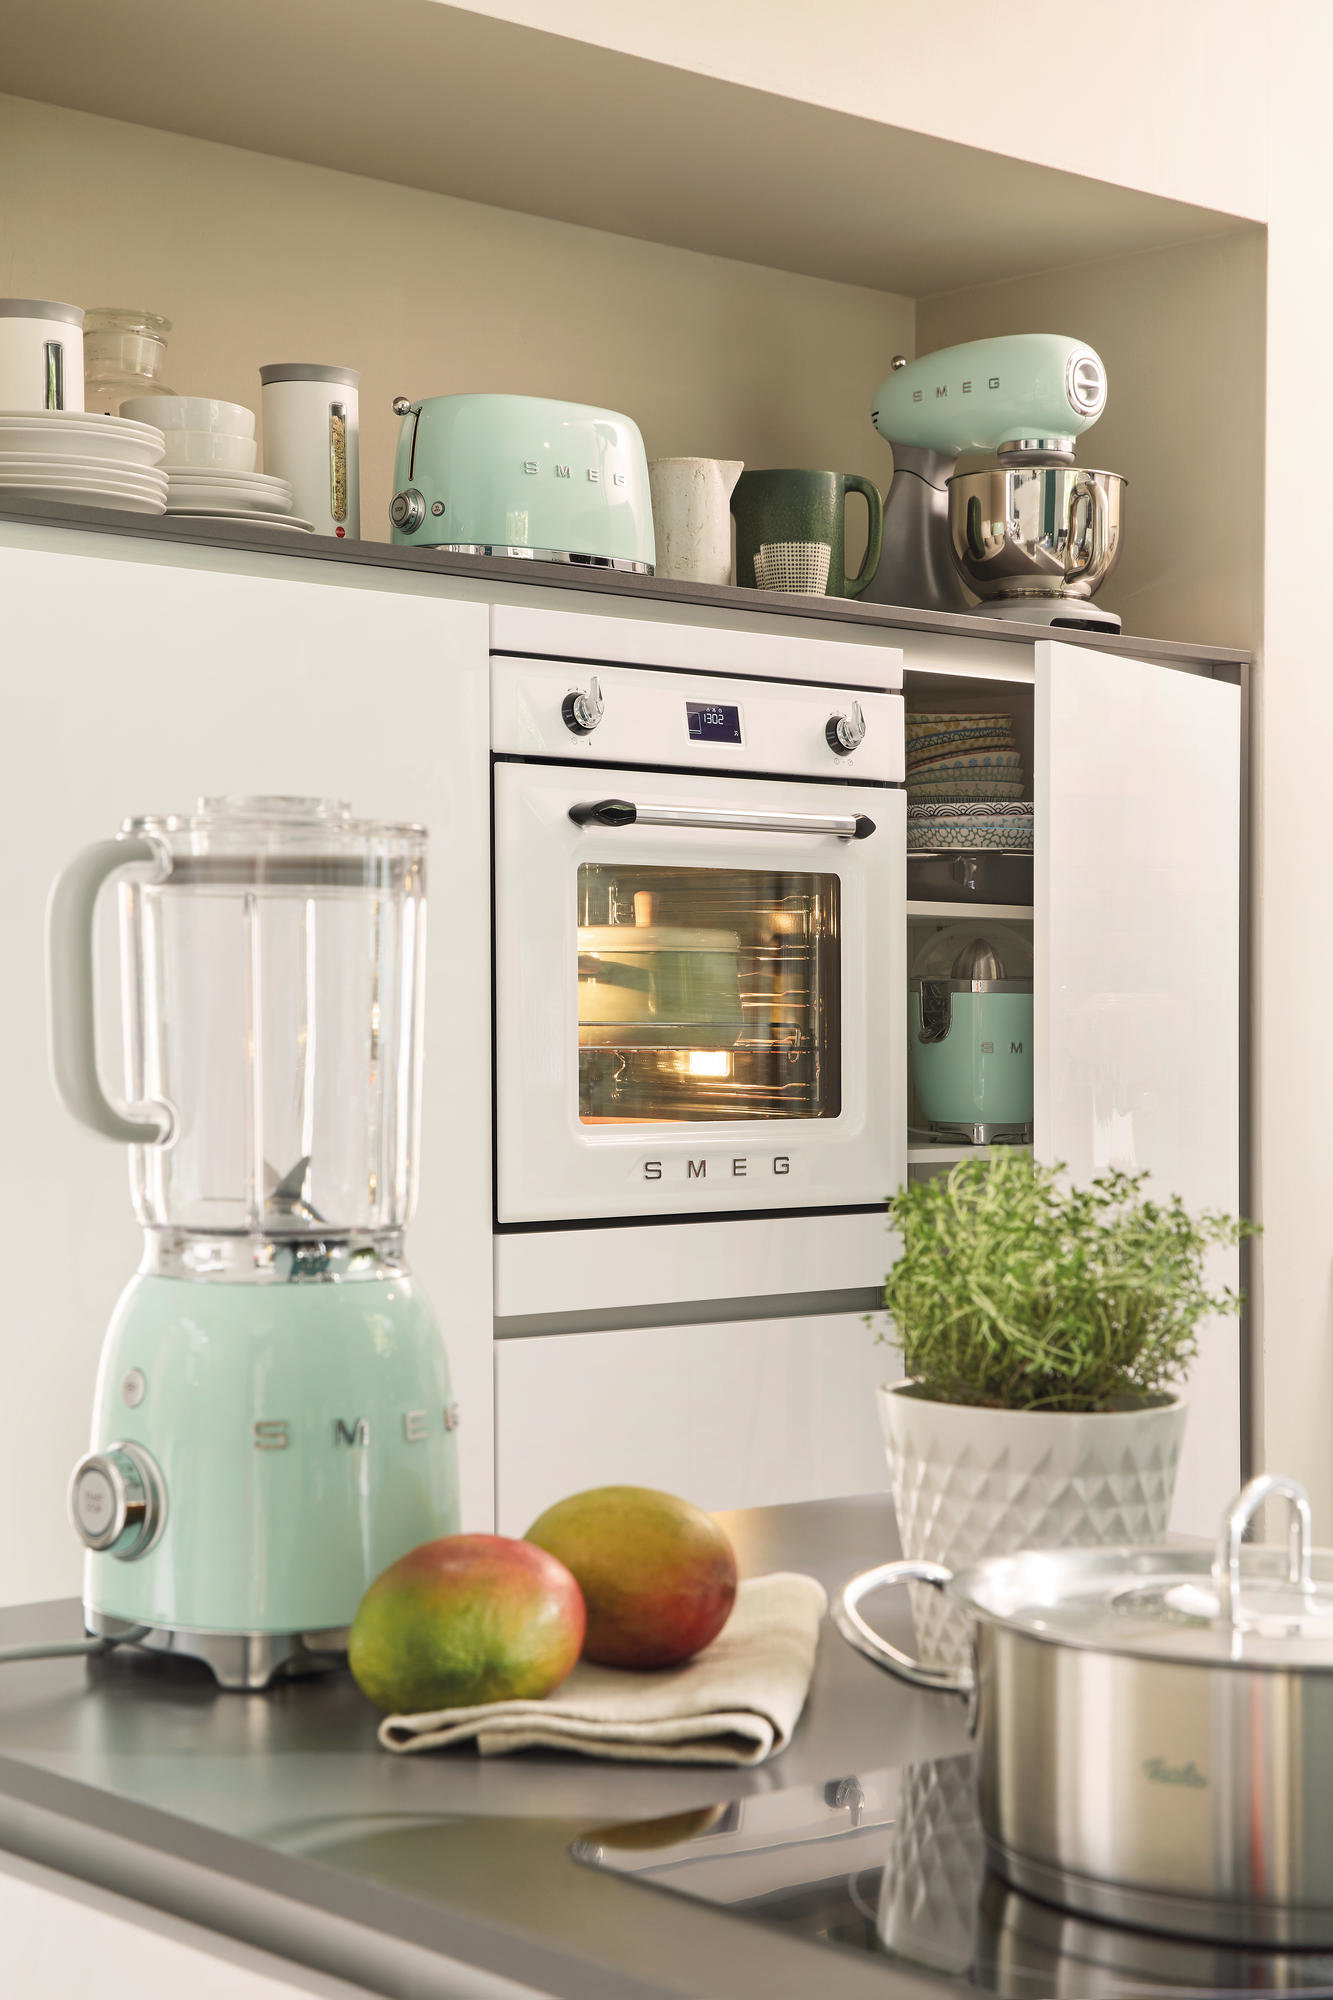 Check out the latest home appliance reviews from Good Housekeeping